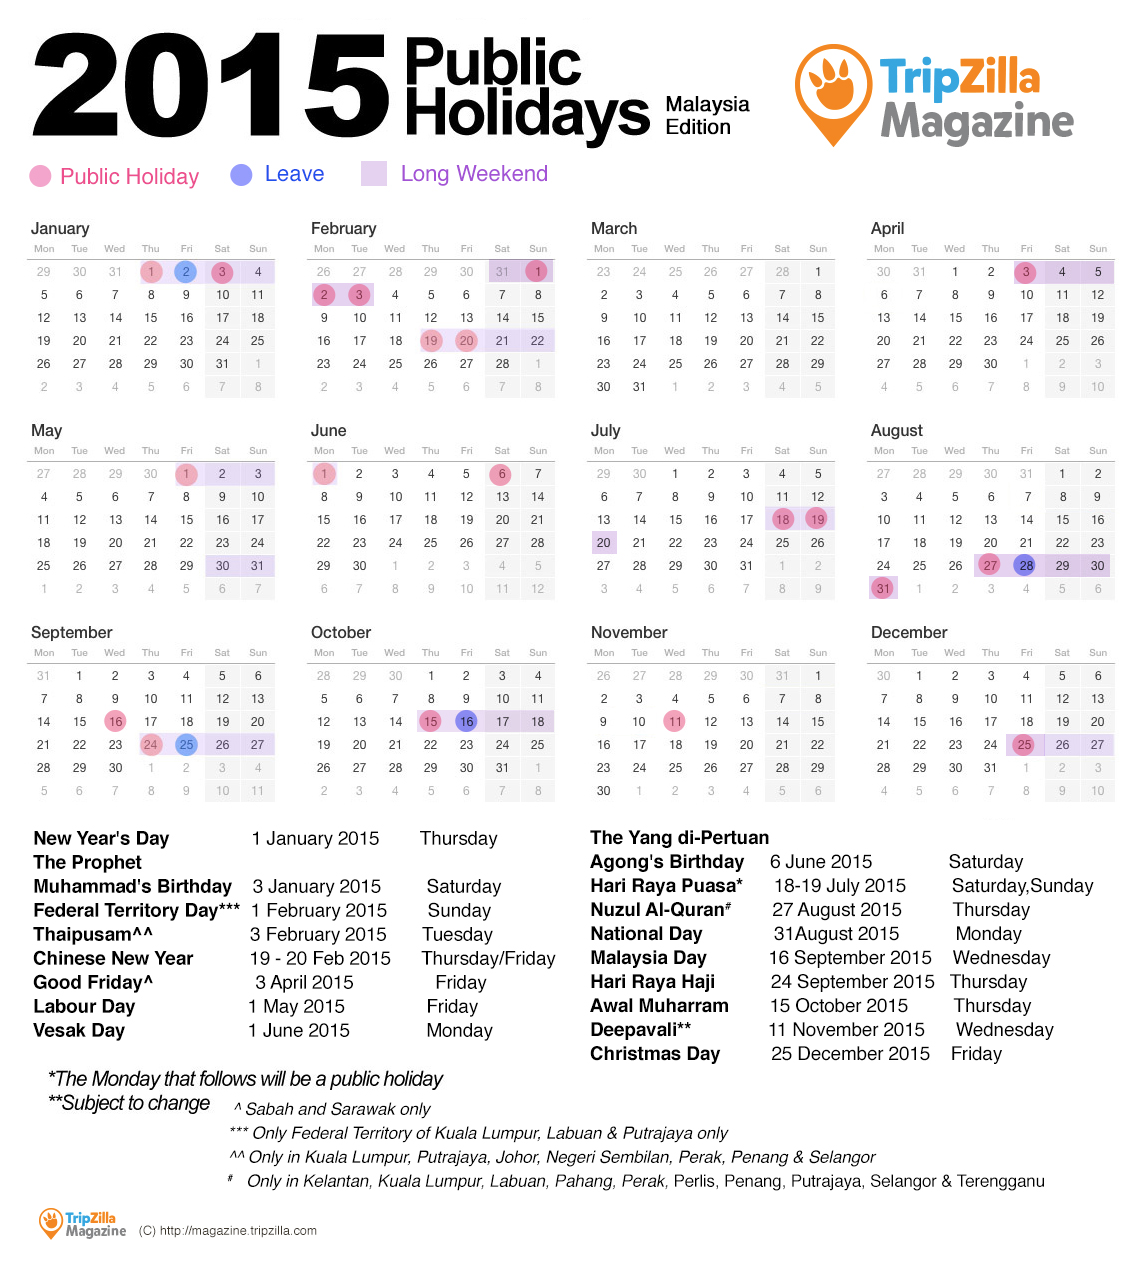 Calendar May Long Weekend : Calendar printable with public holidays